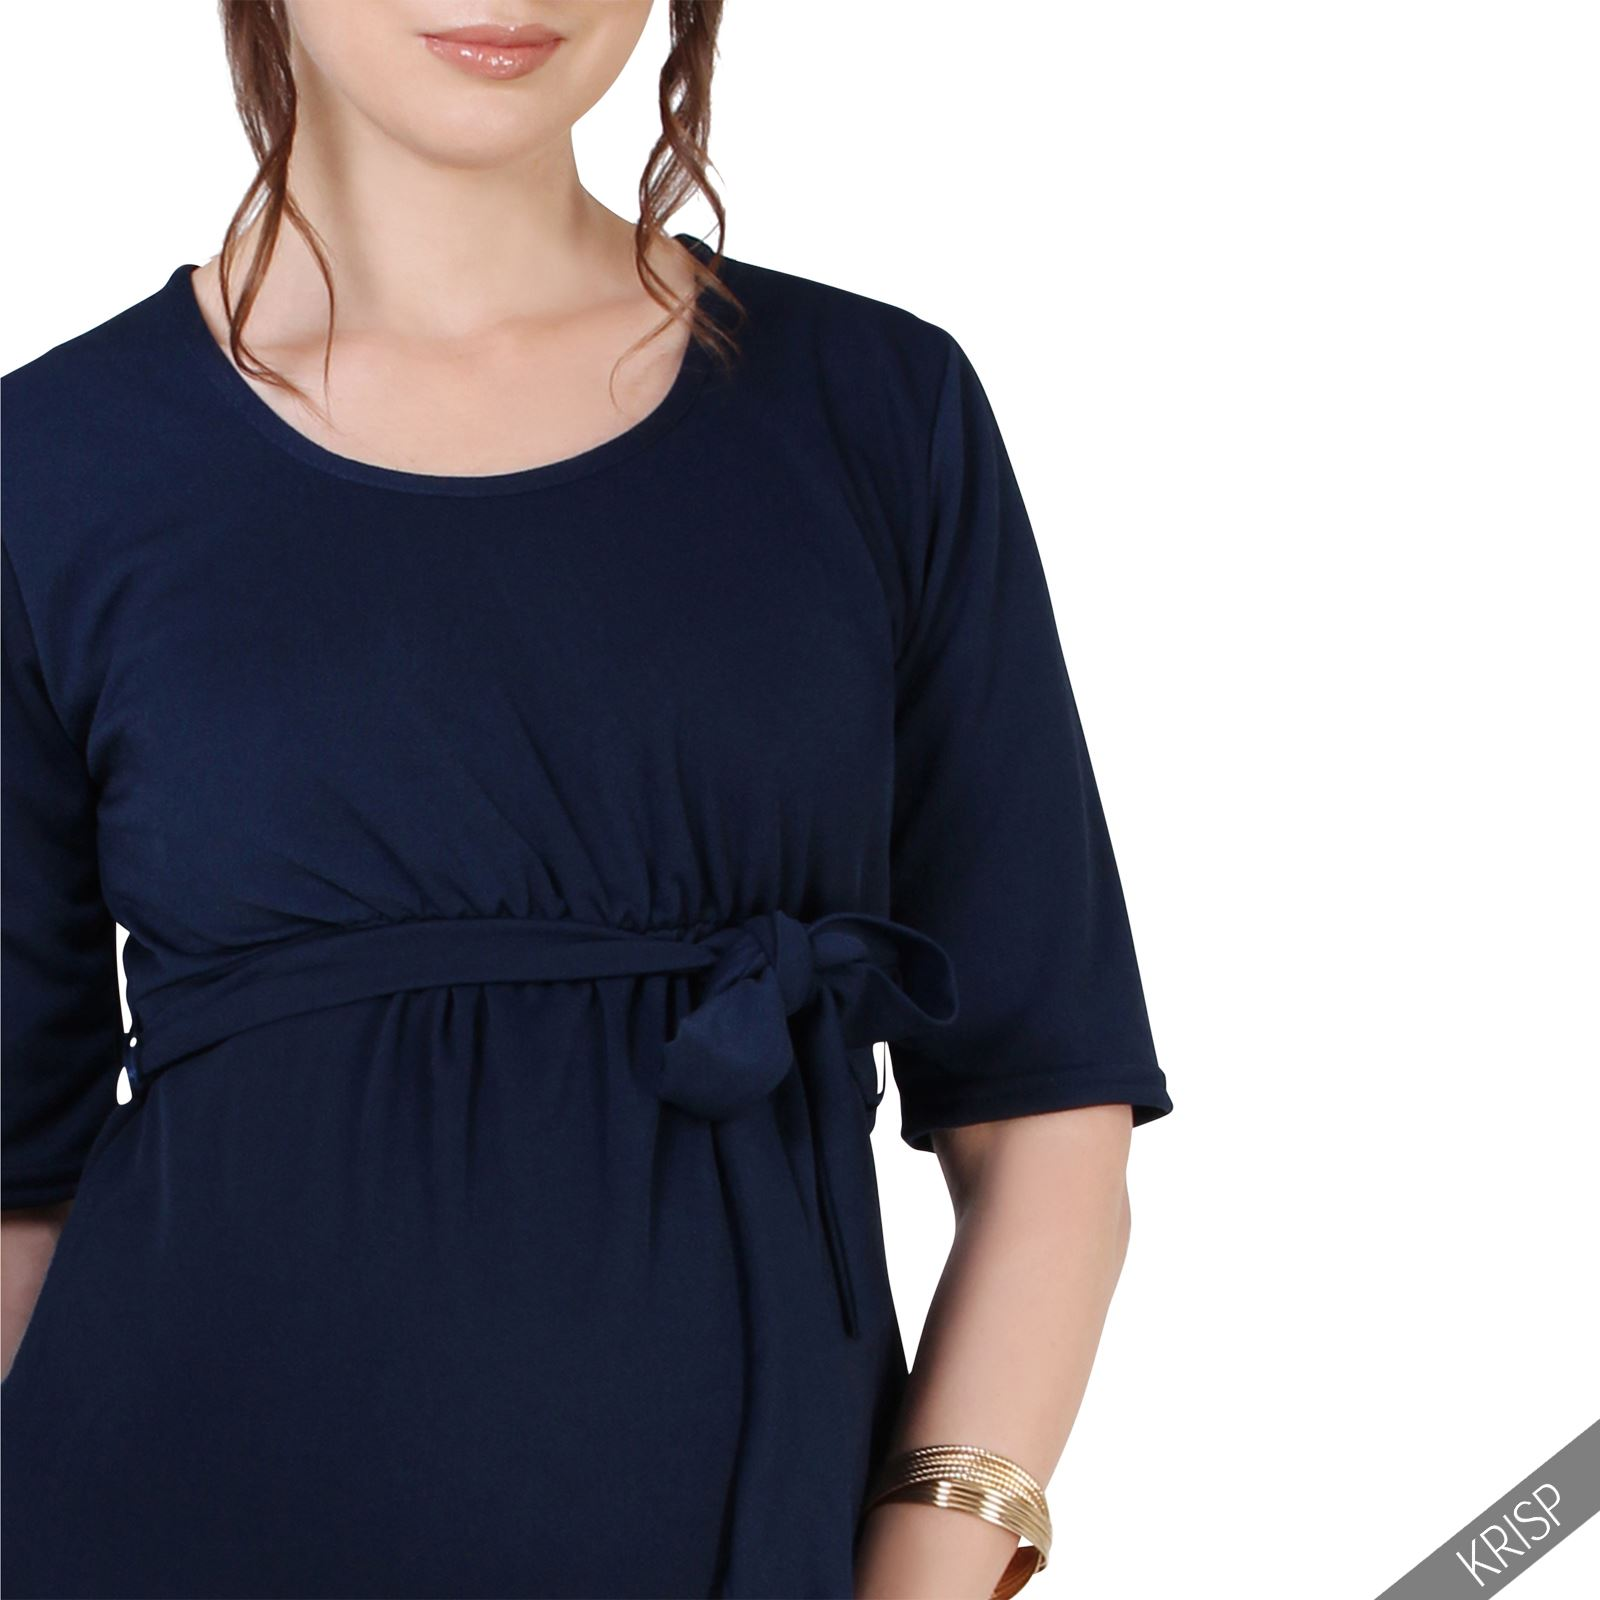 maternity clothing pregnancy party dress short sleeve top